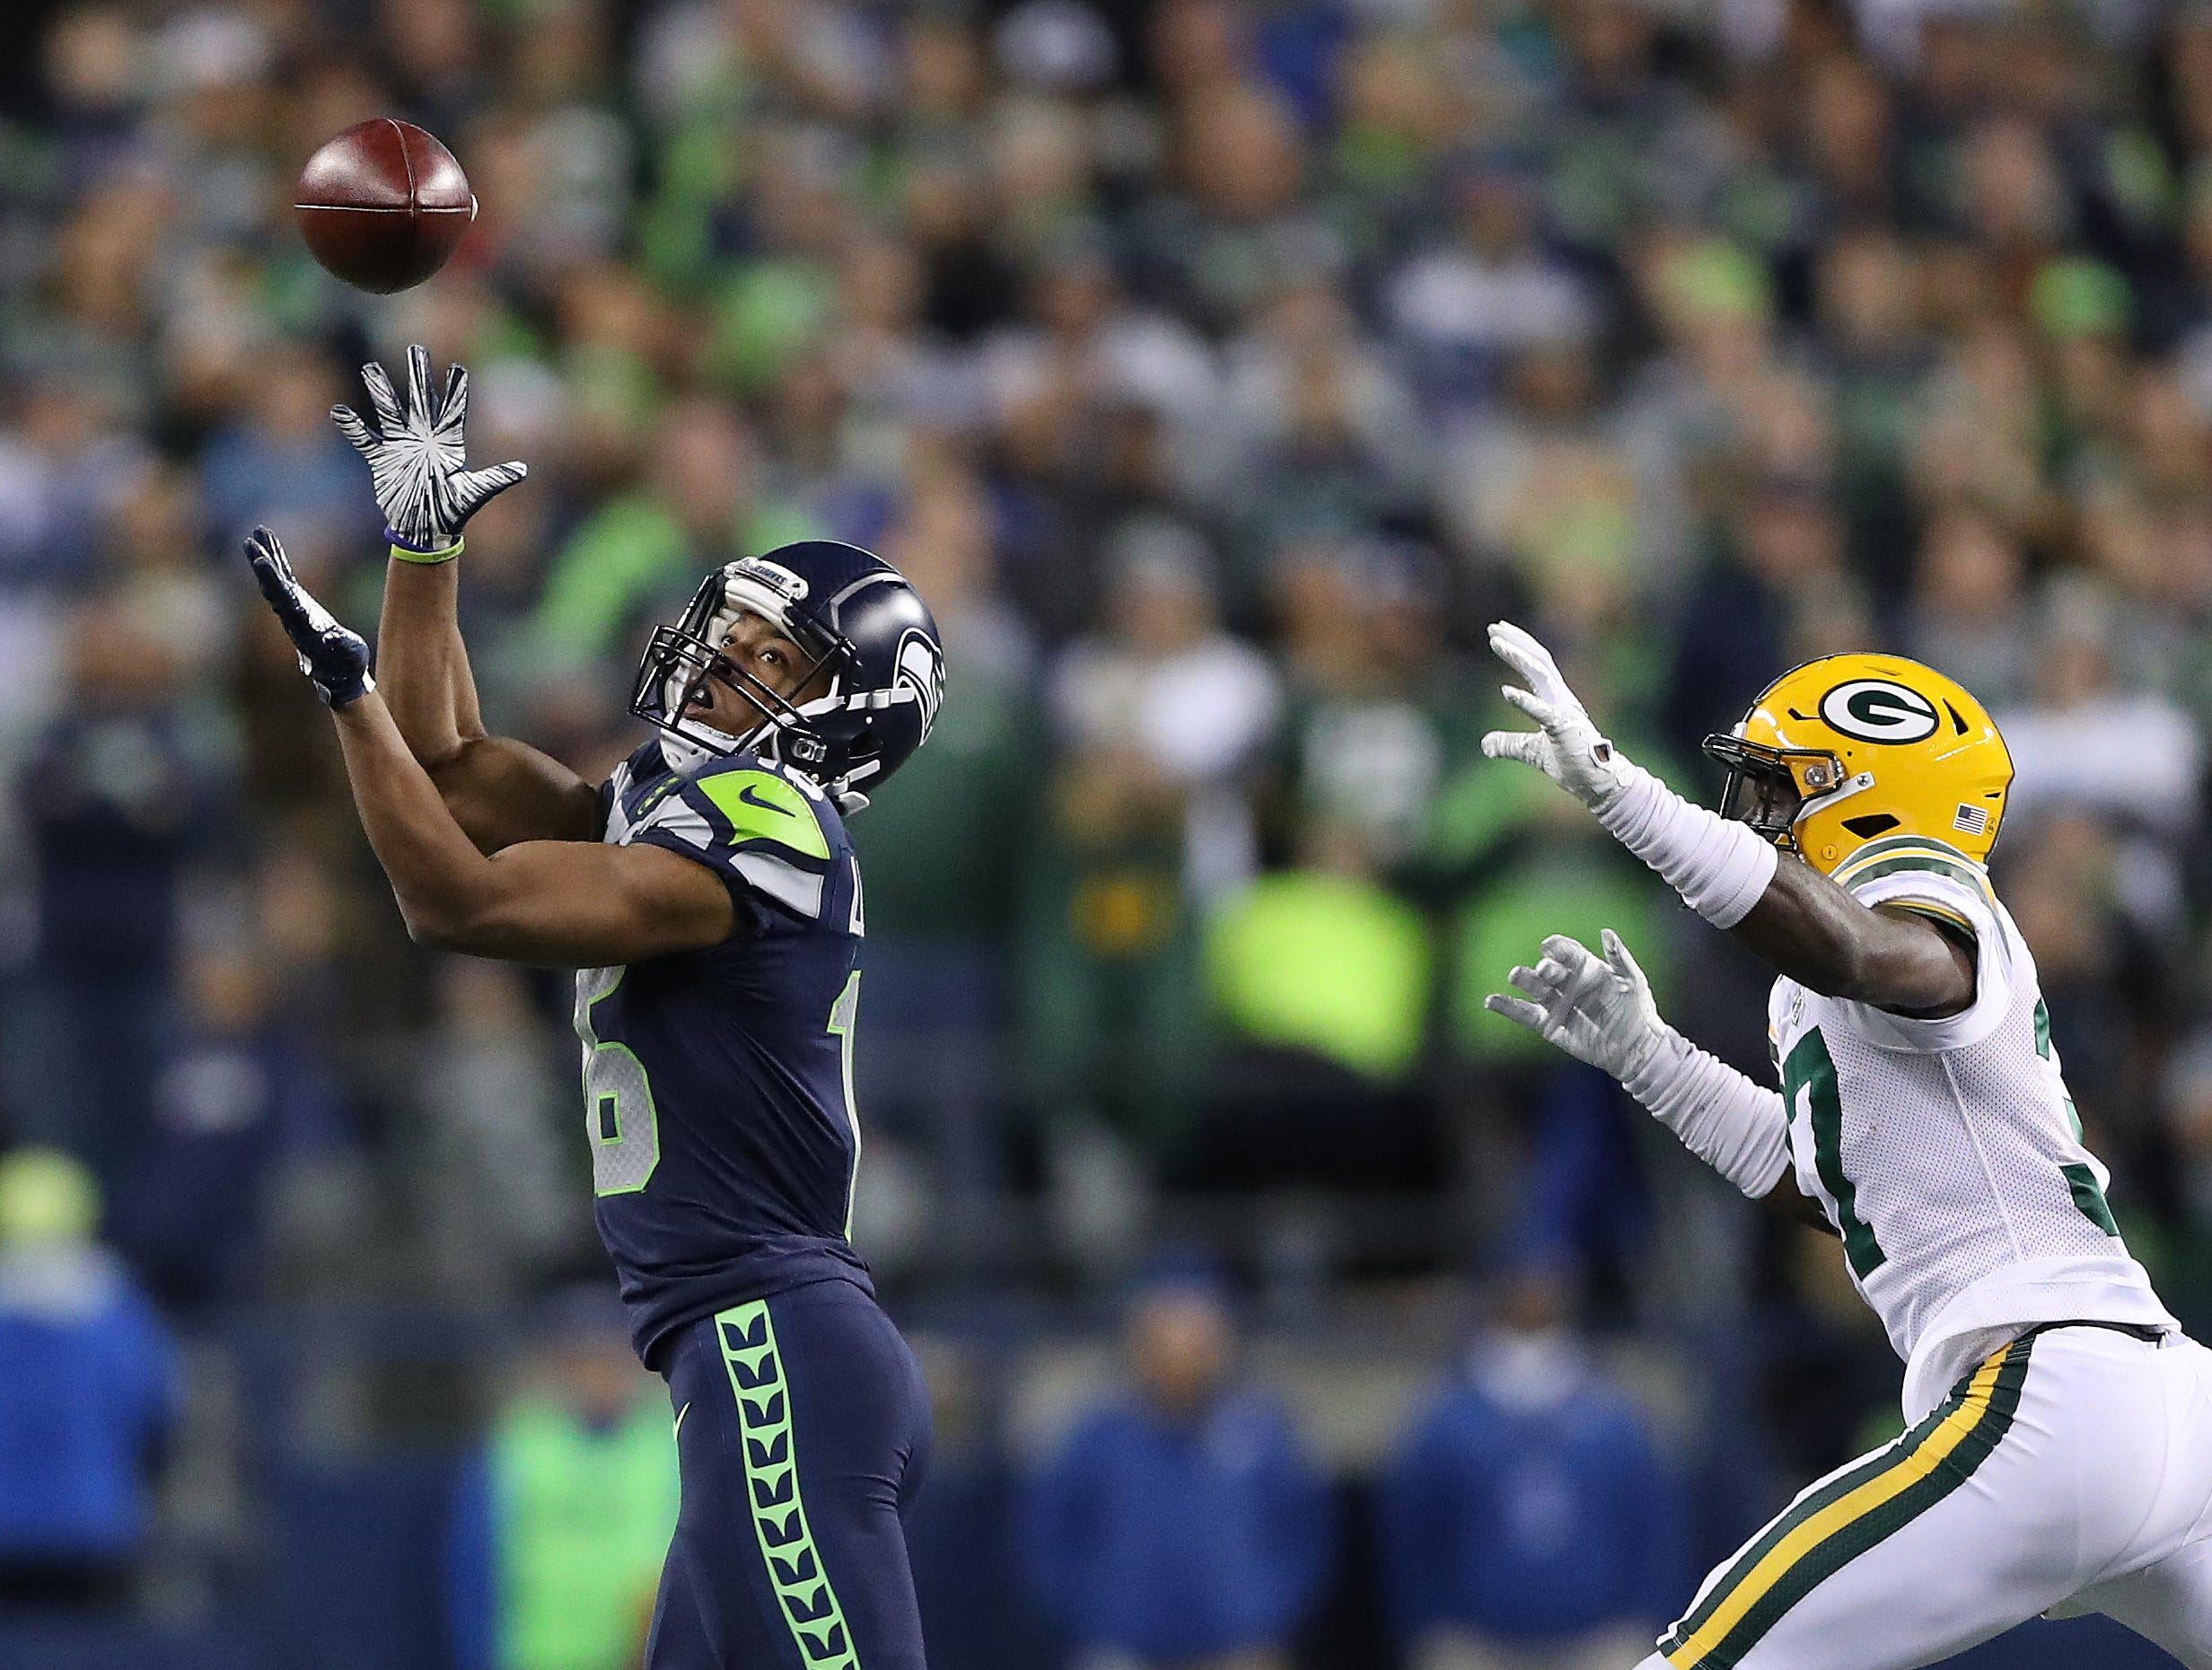 Green Bay Packers cornerback Josh Jackson (37) gets beat on a throw by wide receiver Tyler Lockett (16) against the Seattle Seahawks at CenturyLink Field Thursday, November 15, 2018 in Seattle, WA. Jim Matthews/USA TODAY NETWORK-Wis